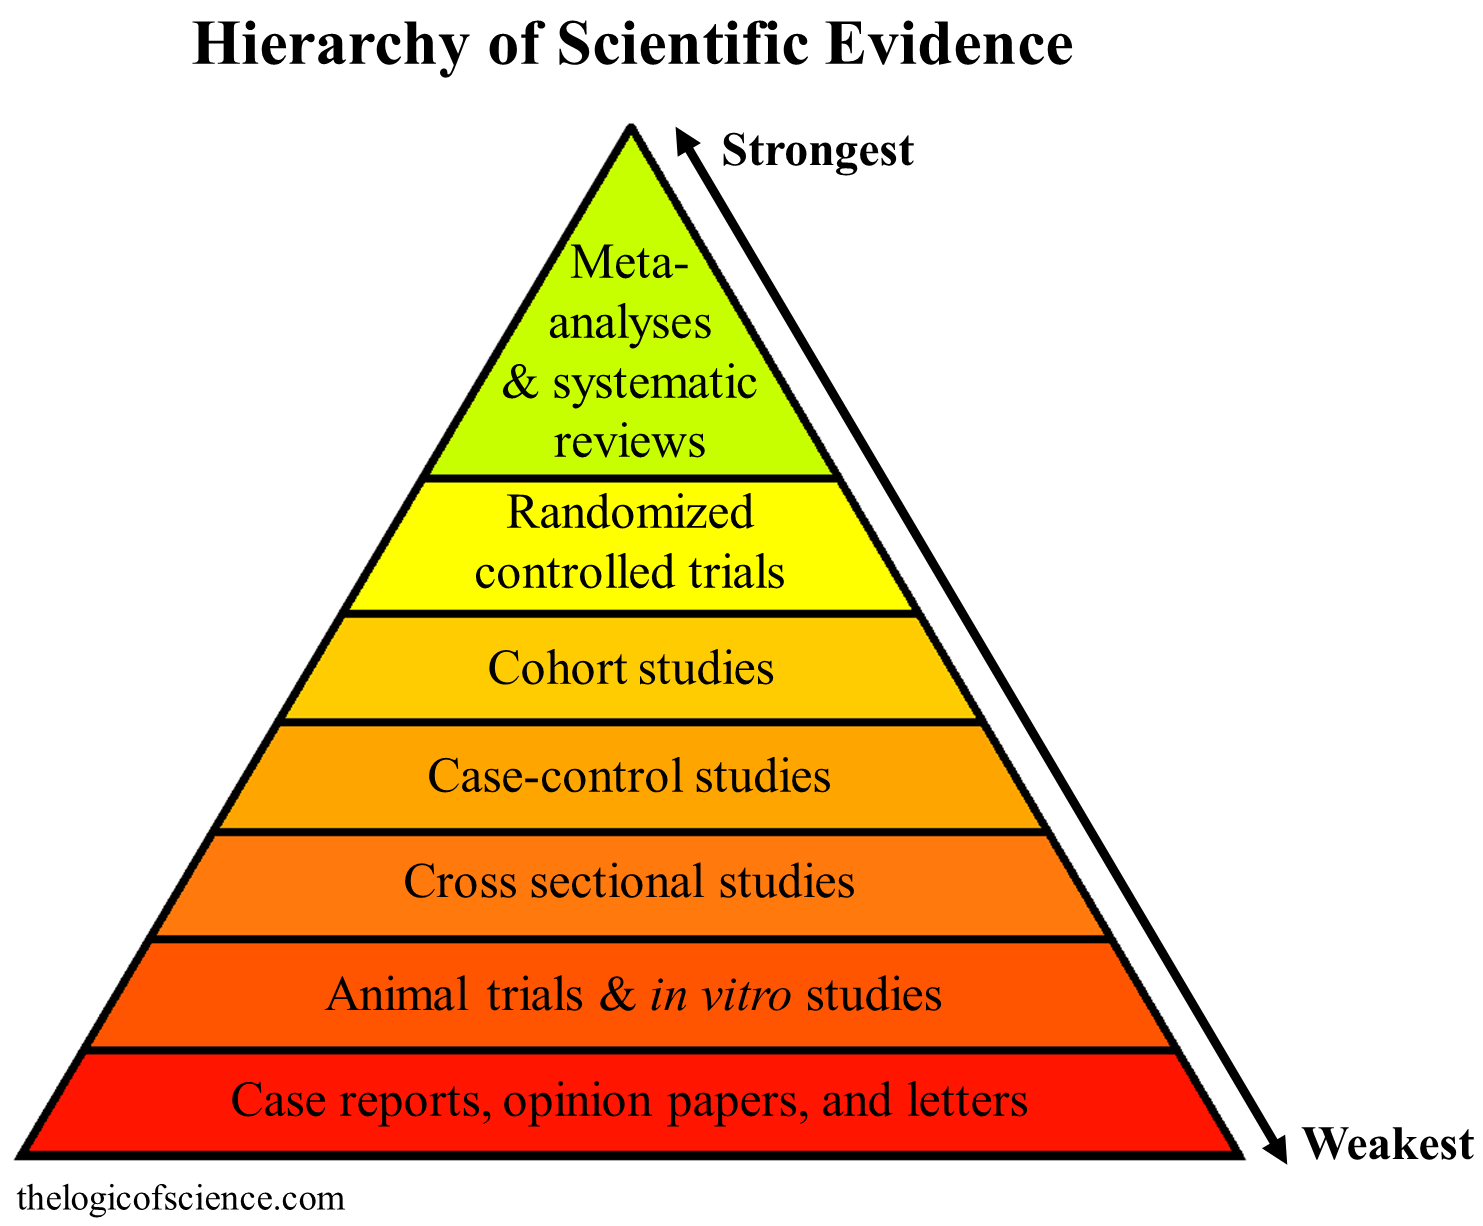 009 Hierarchy Of Evidence No Not1 Autism Research Paper Top Examples Full